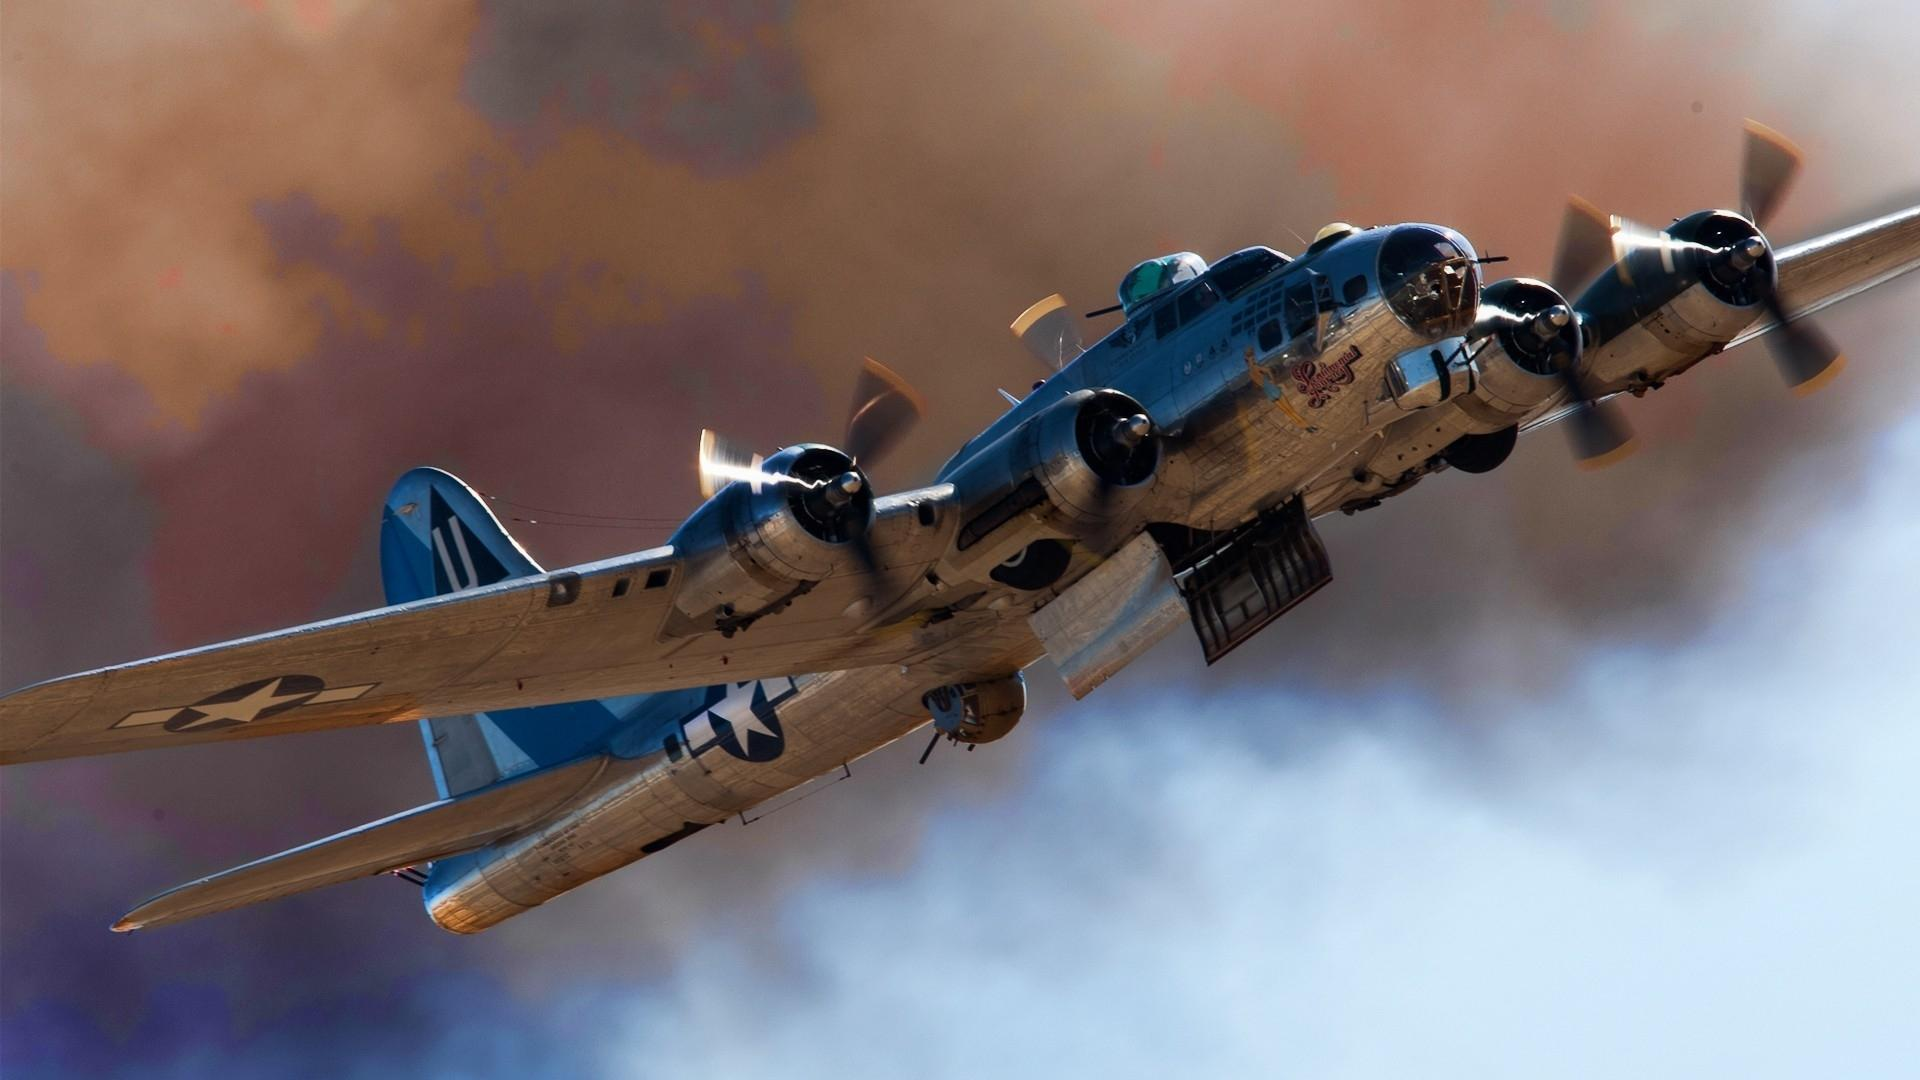 Space Journey 3d Wallpaper Beautiful B17 Flying Fortress Wallpaper Nature And